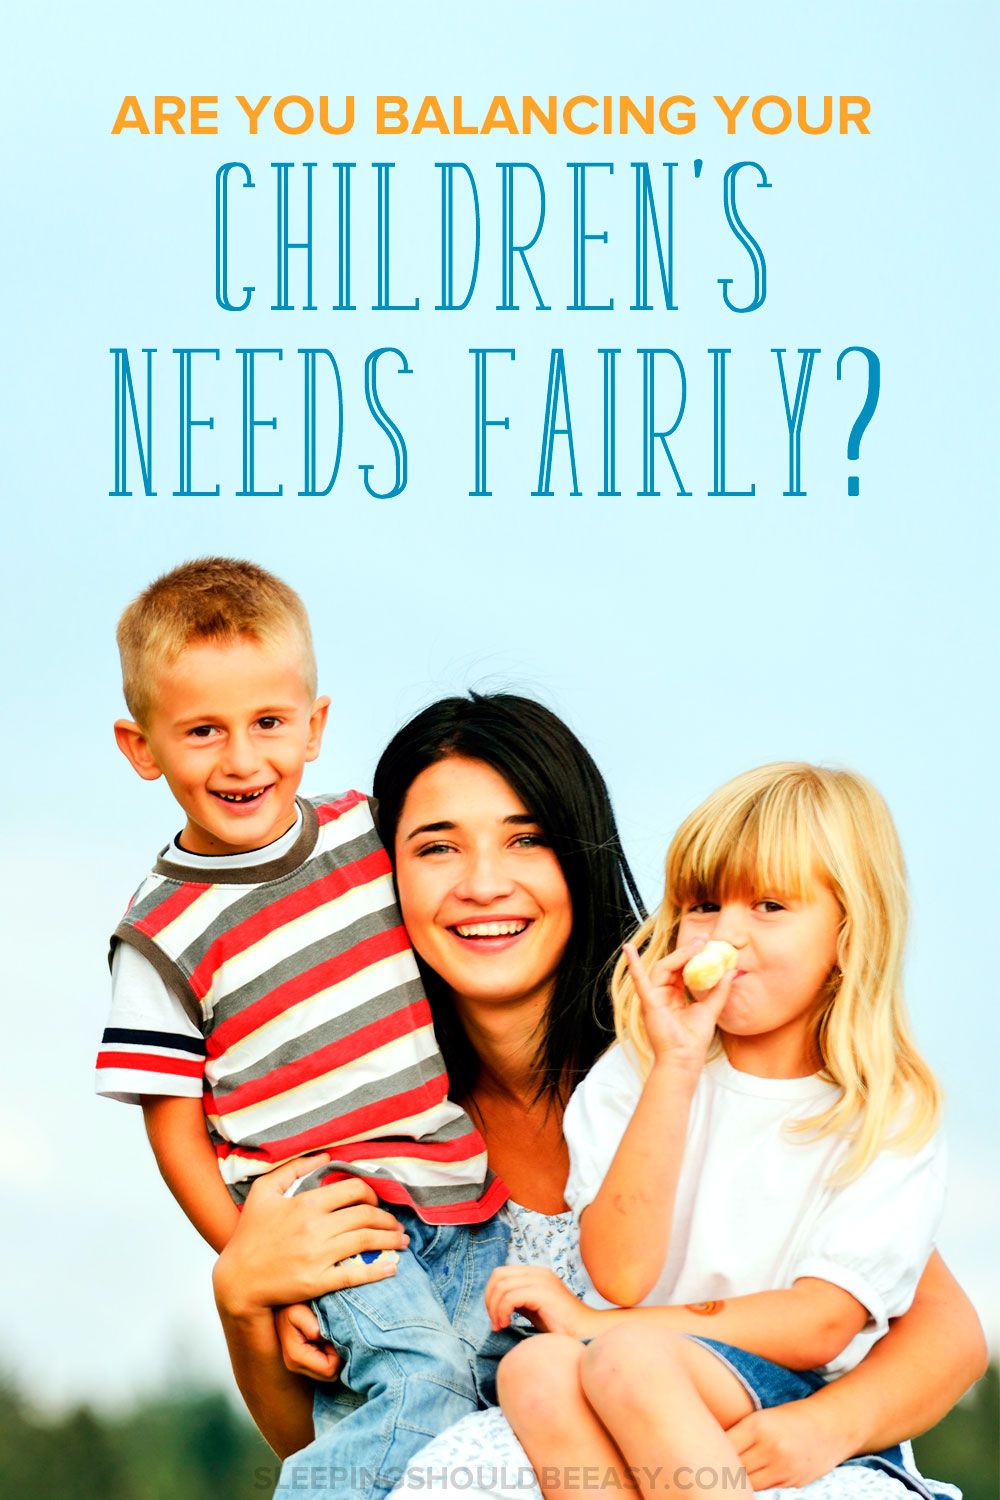 It's easy to feel like you're not treating children fairly when you have more than one child. Or you feel pulled in different directions without being able to spend quality time with each of them. Learn how to balance your children's needs fairly with these tips.